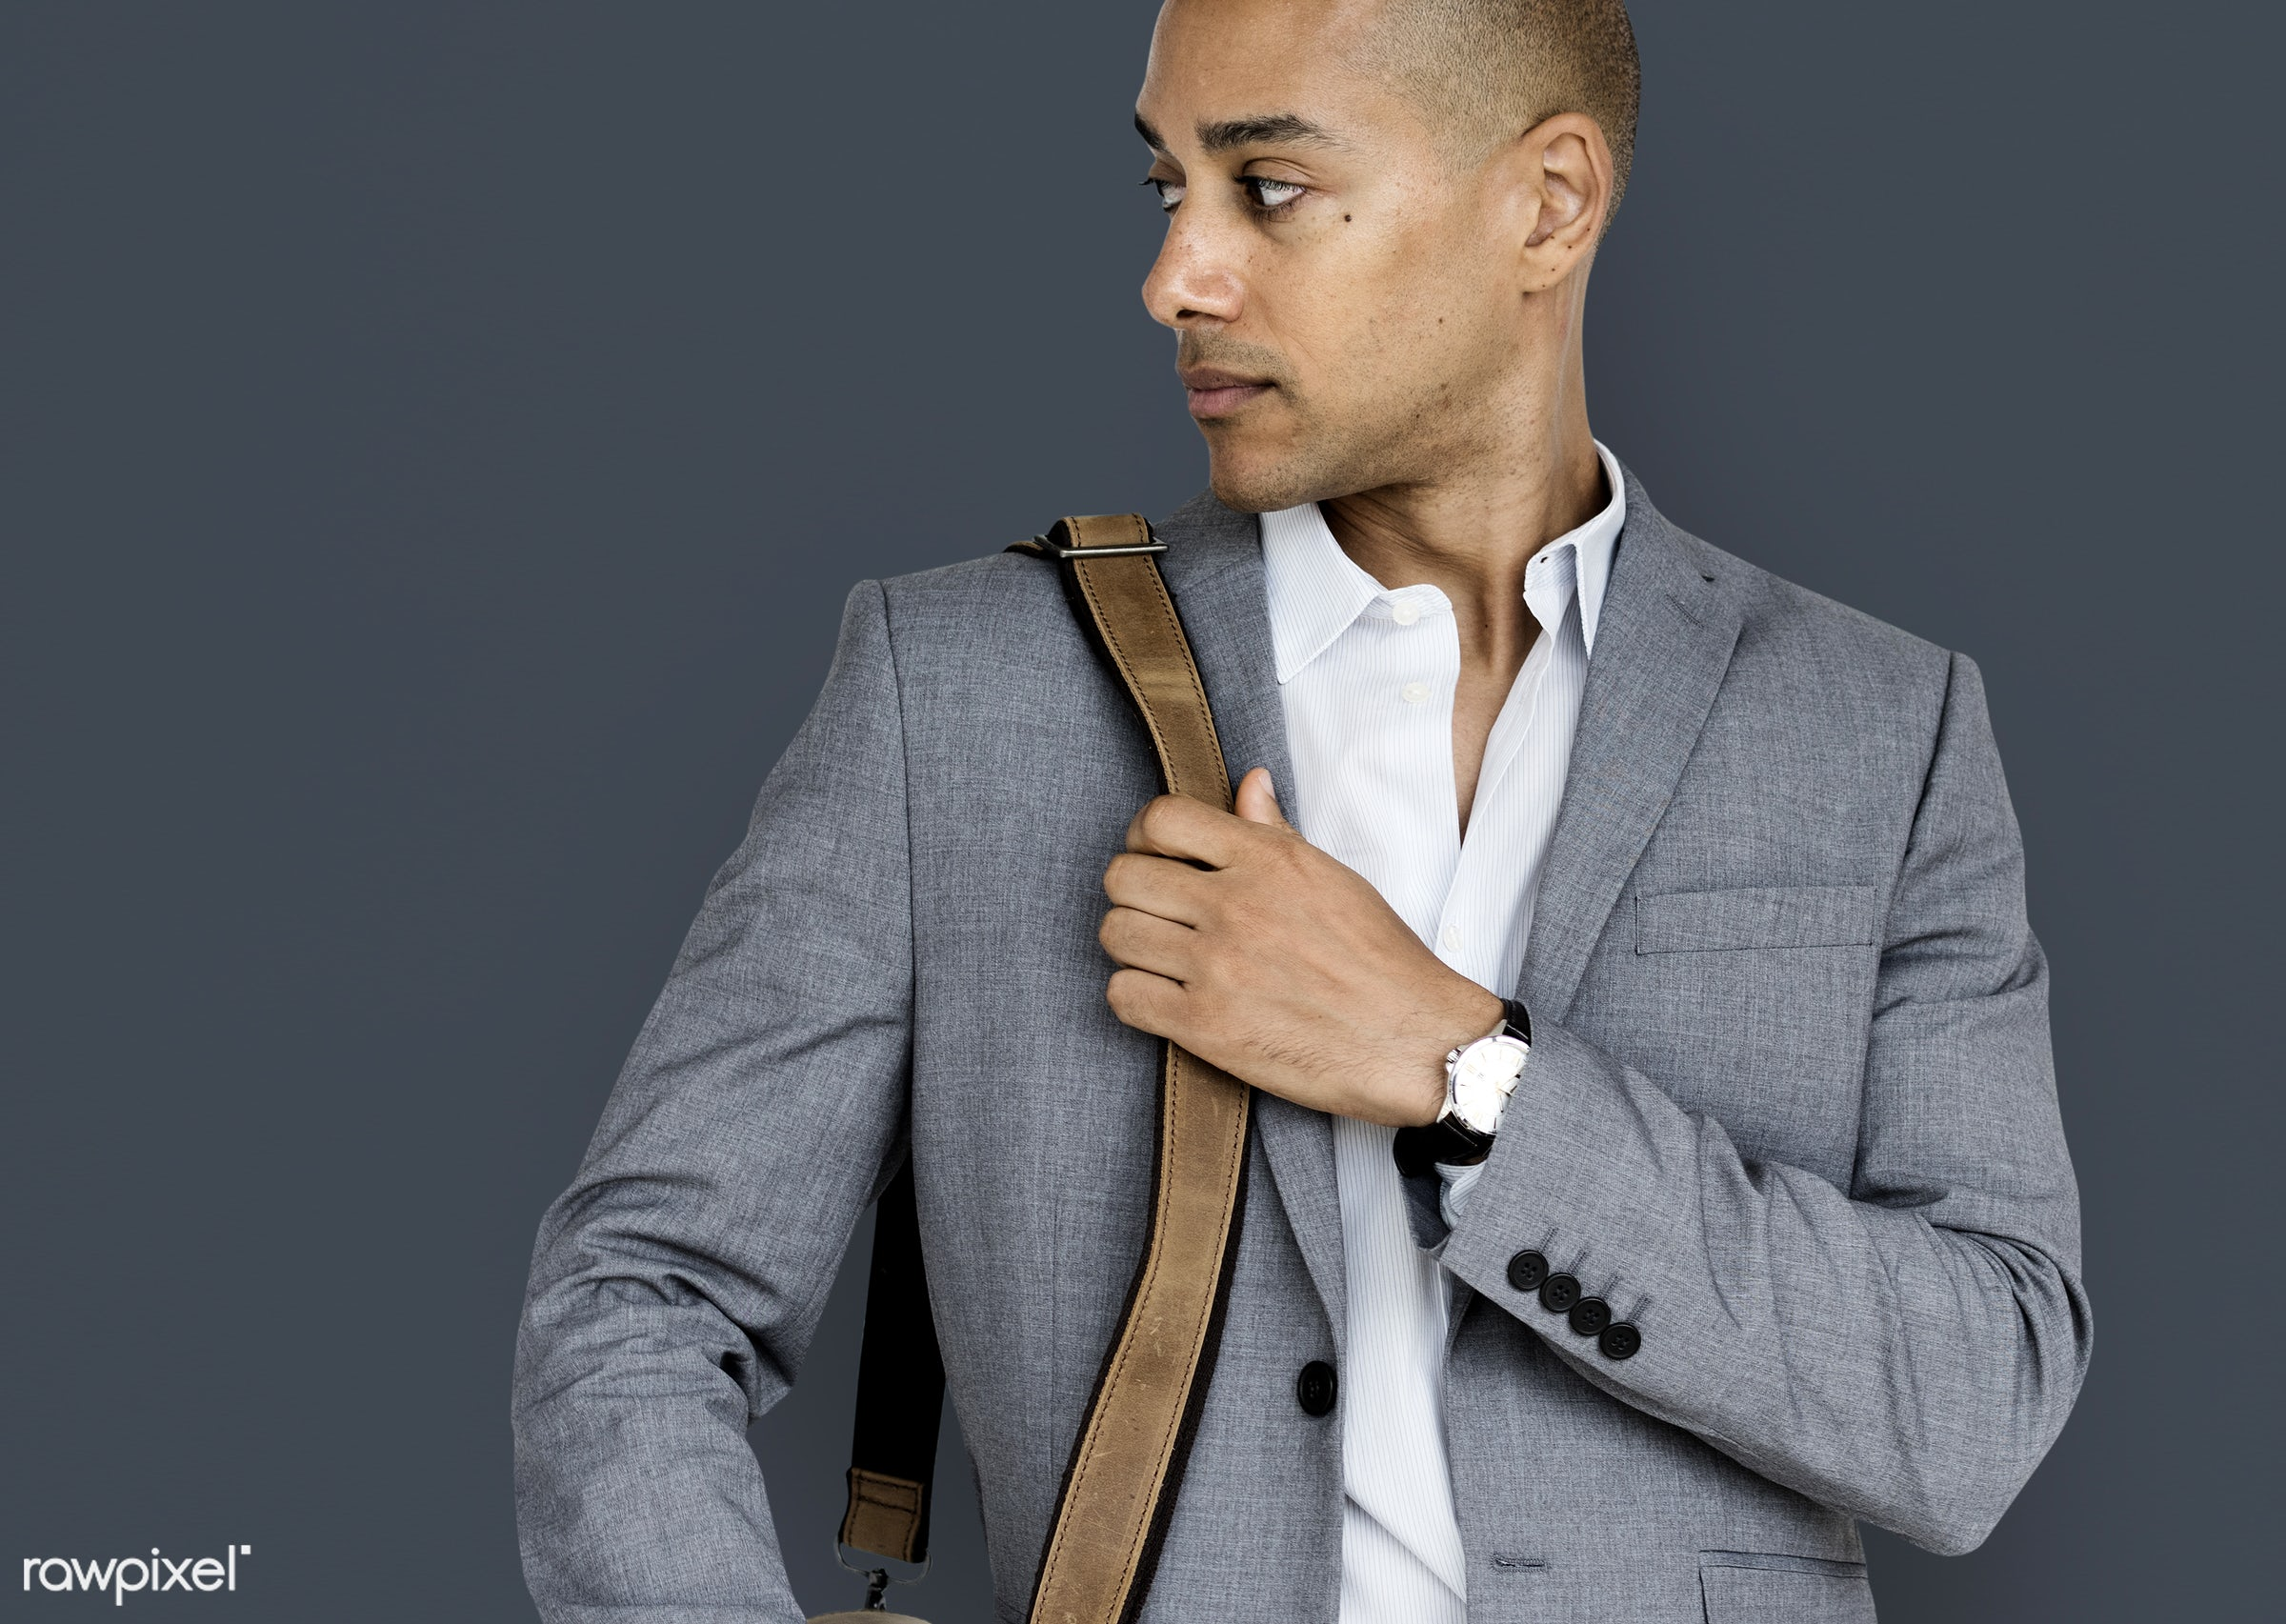 expression, studio, person, business wear, business dressing, people, formal dressing, business, positive, man, black,...